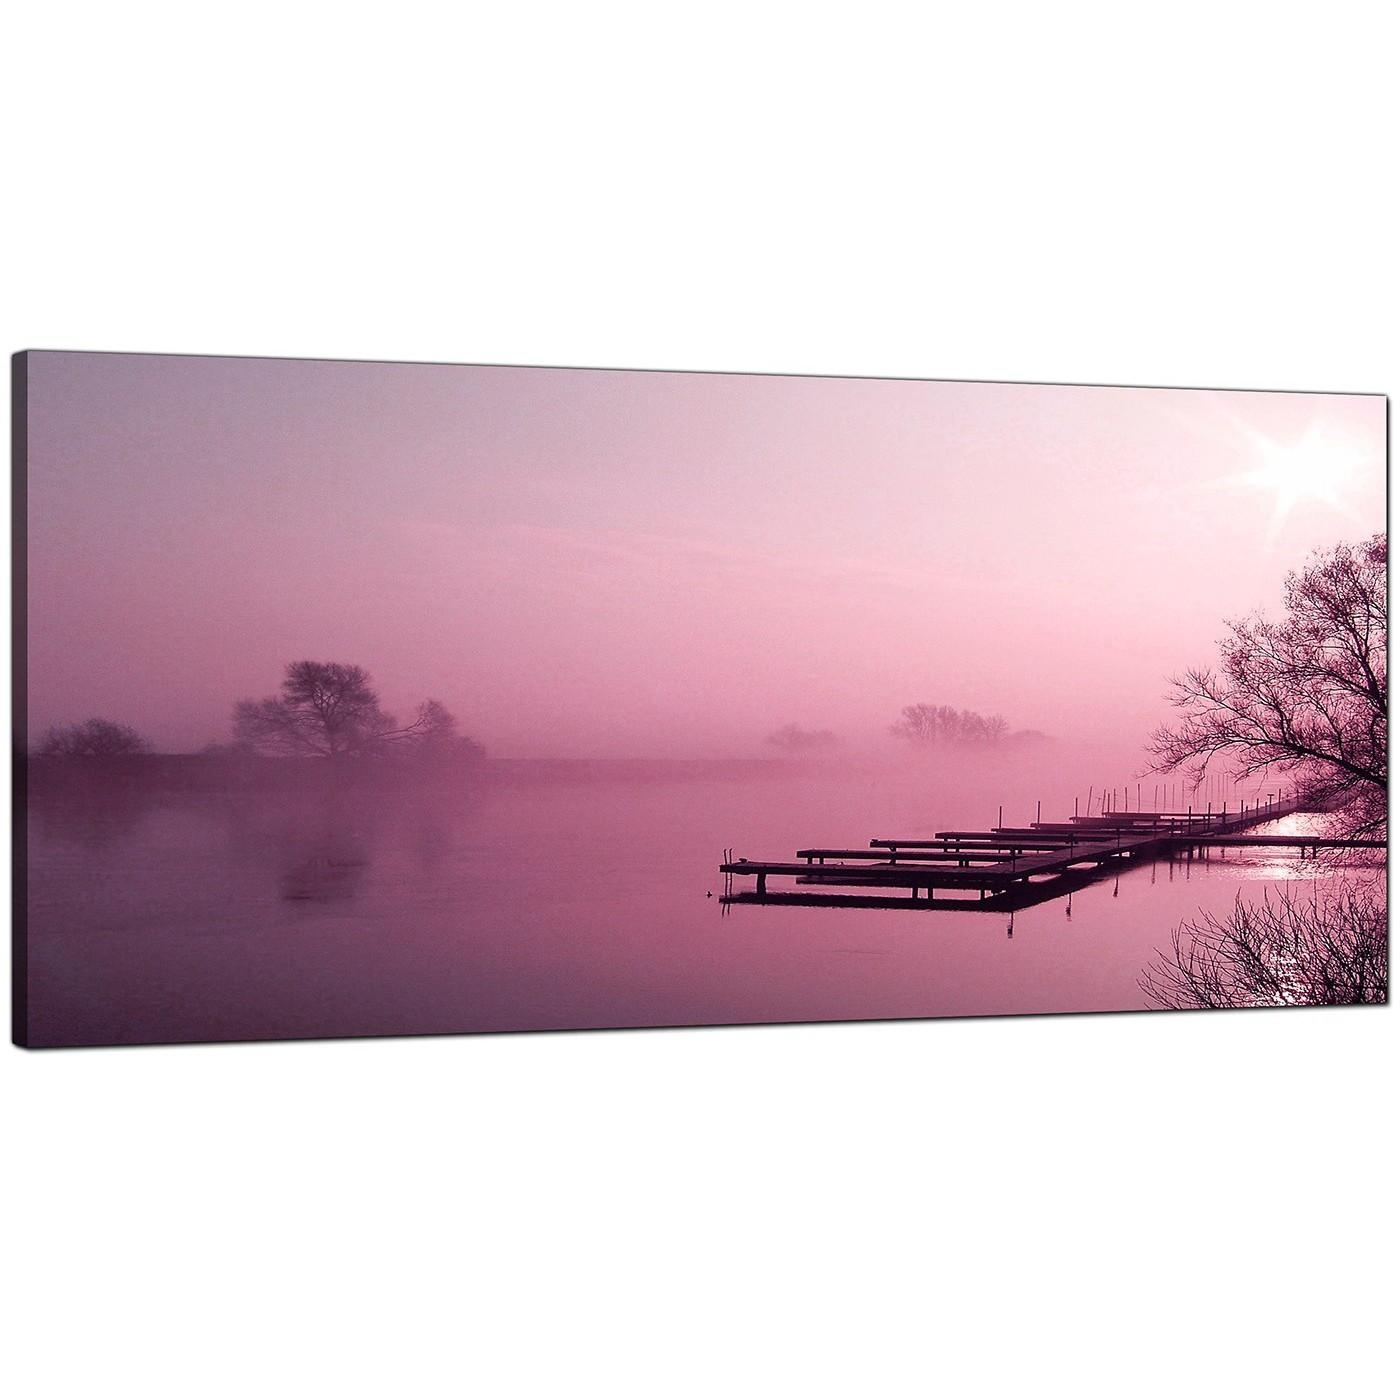 Cheap Plum Canvas Prints Of A River Landscape Pertaining To Plum Coloured Wall Art (View 10 of 20)